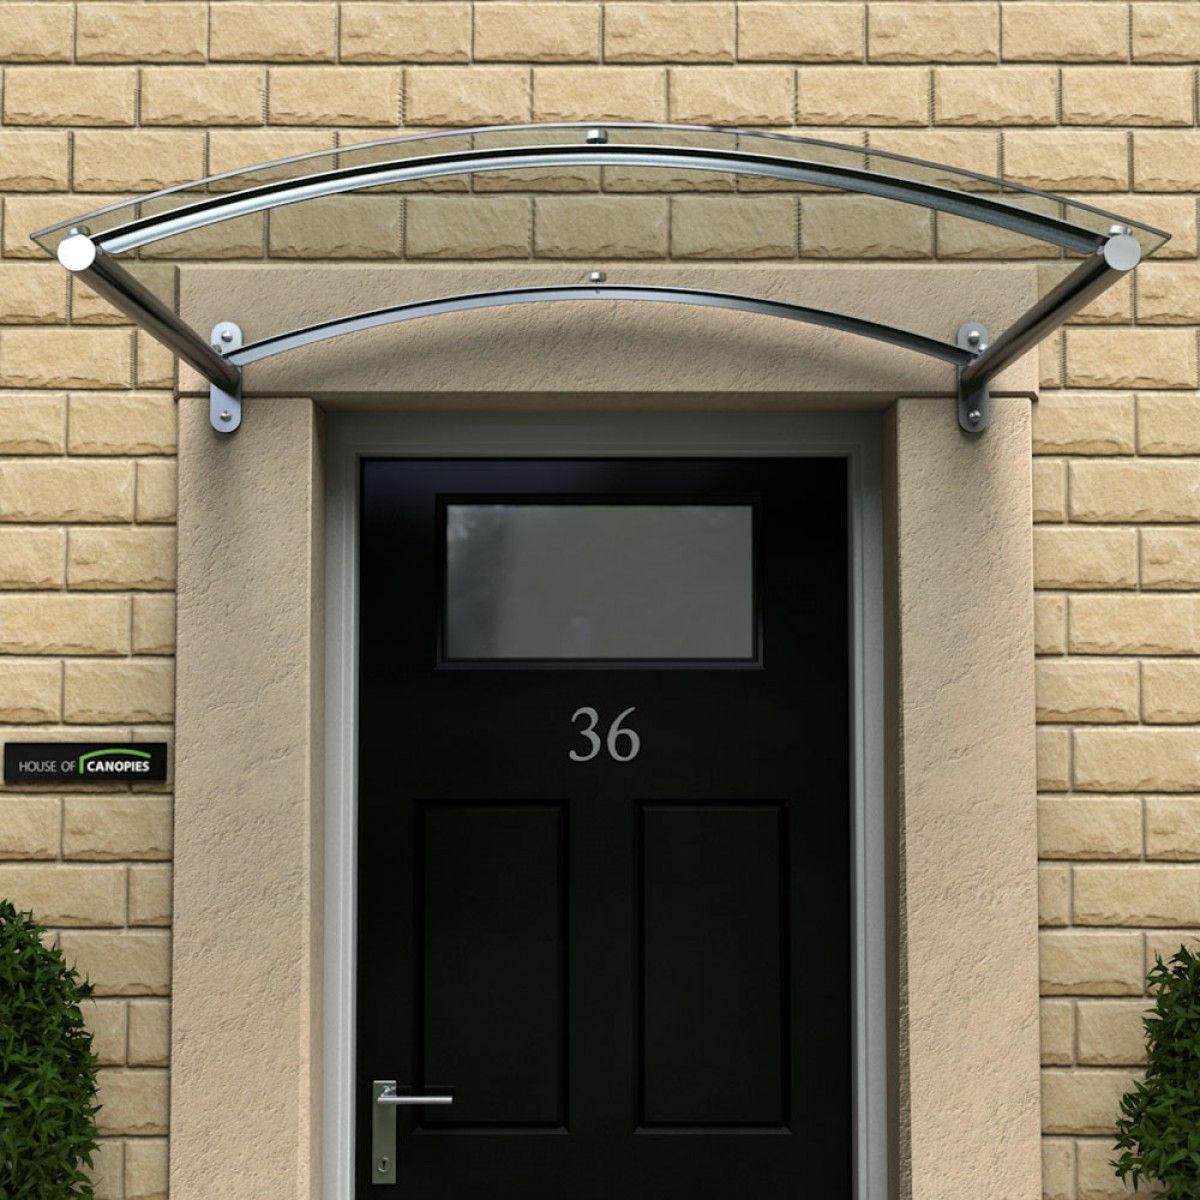 Canopies Canopy And Front Door Glass And: Basic Canopy. Not Sure About The Curve. *BESPOKE Type J